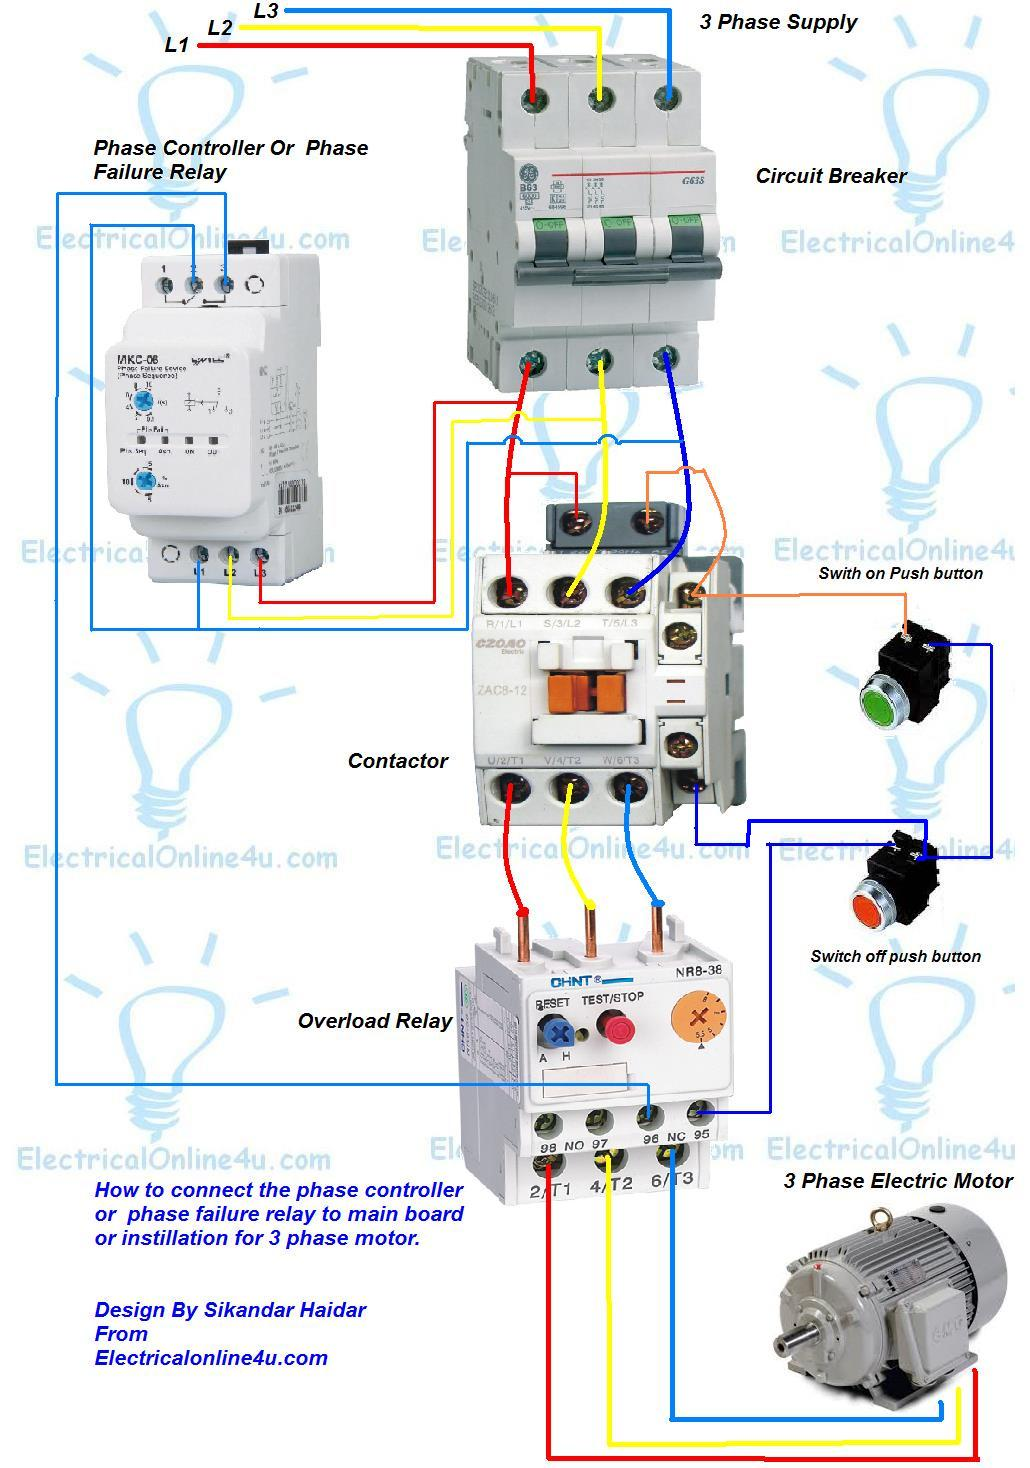 Phase%2Bfailure%2Brelay%2B %2Bphase%2Bcontroller%2Binstilaion%2Bin%2B3%2Bphase%2BMain%2Bboard%2Bor%2Bfor%2B3%2Bphase%2Bmotor phase controller wiring phase failure relay diagram electrical relay wiring diagram at edmiracle.co